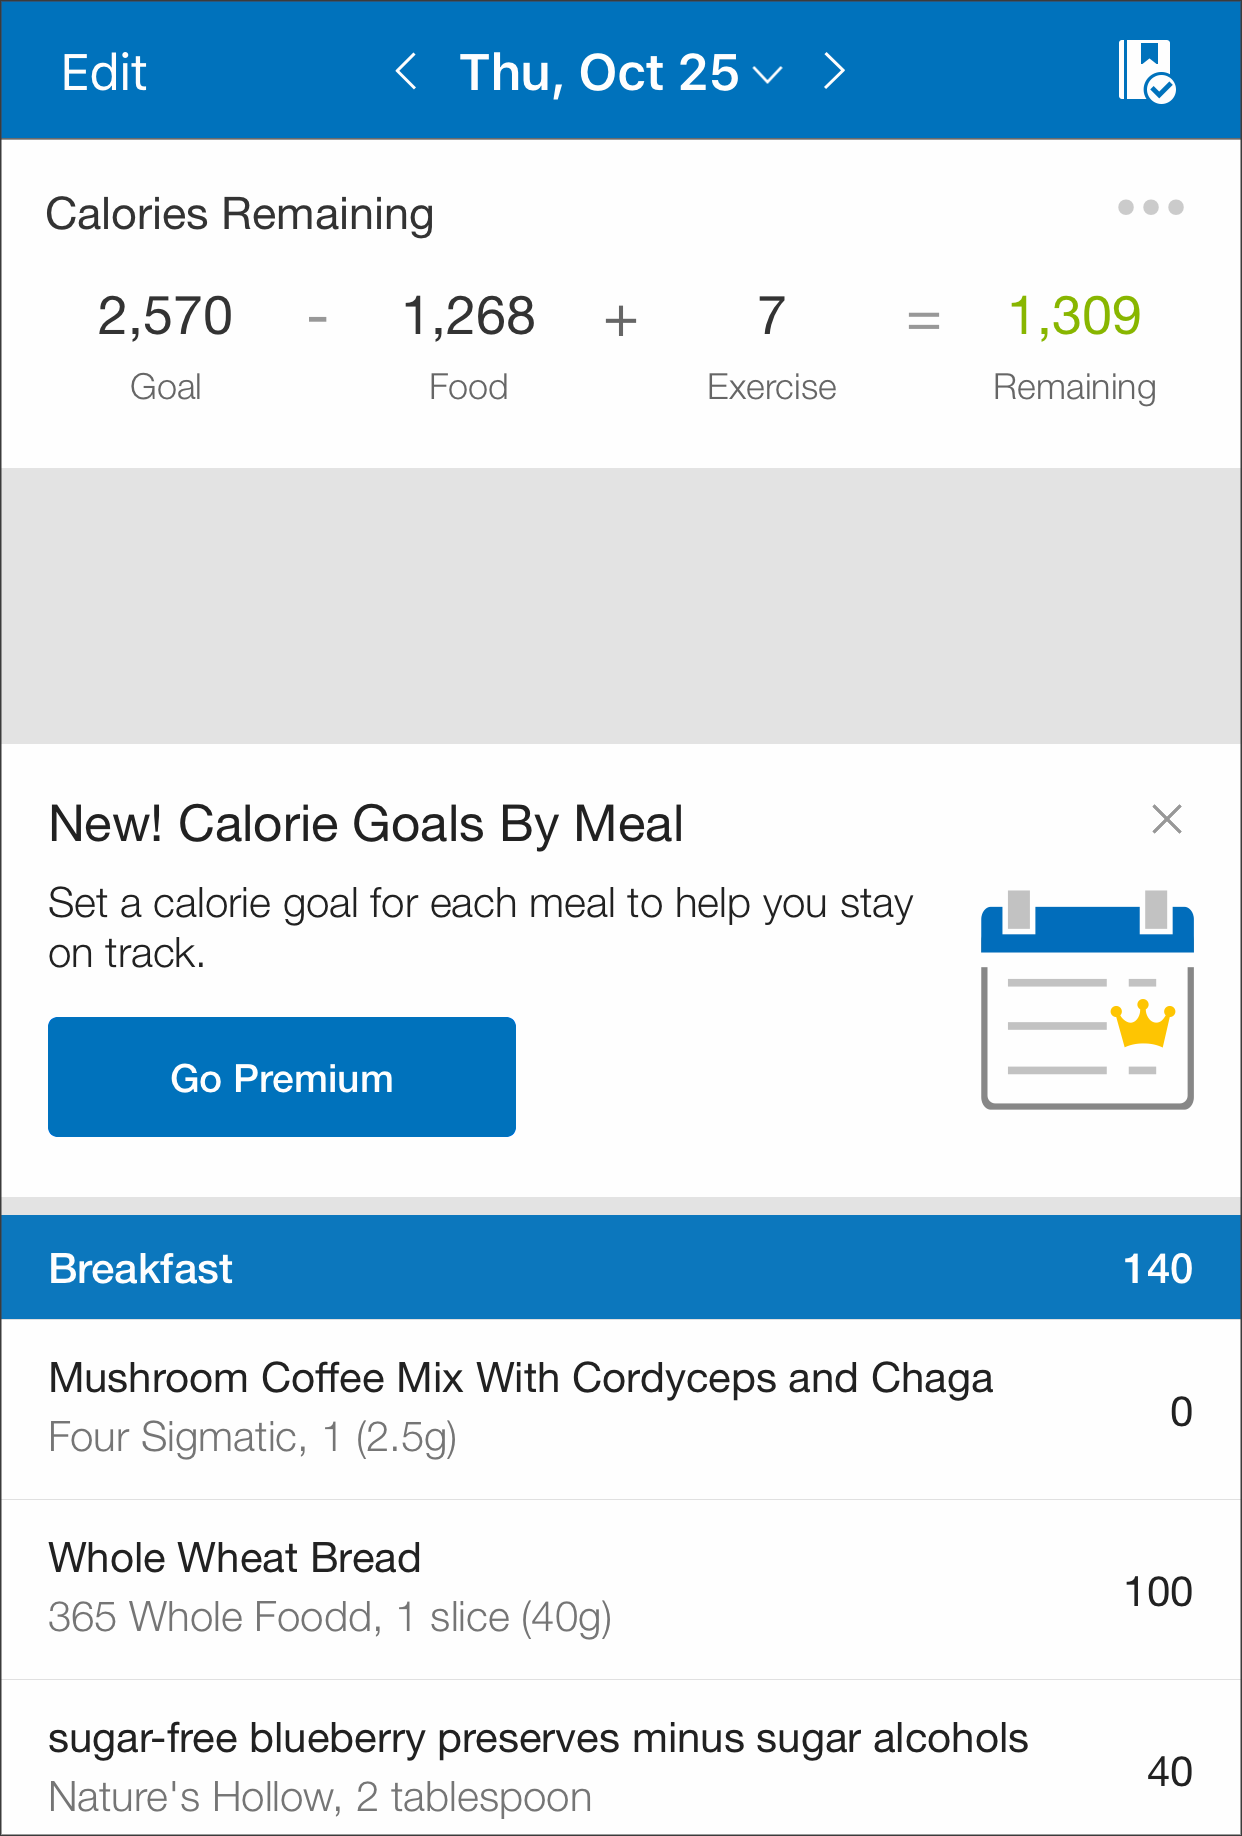 Day 1 of the FMD was very manageable. Not the usual amount of calories, but not an uncomfortable deficit either.